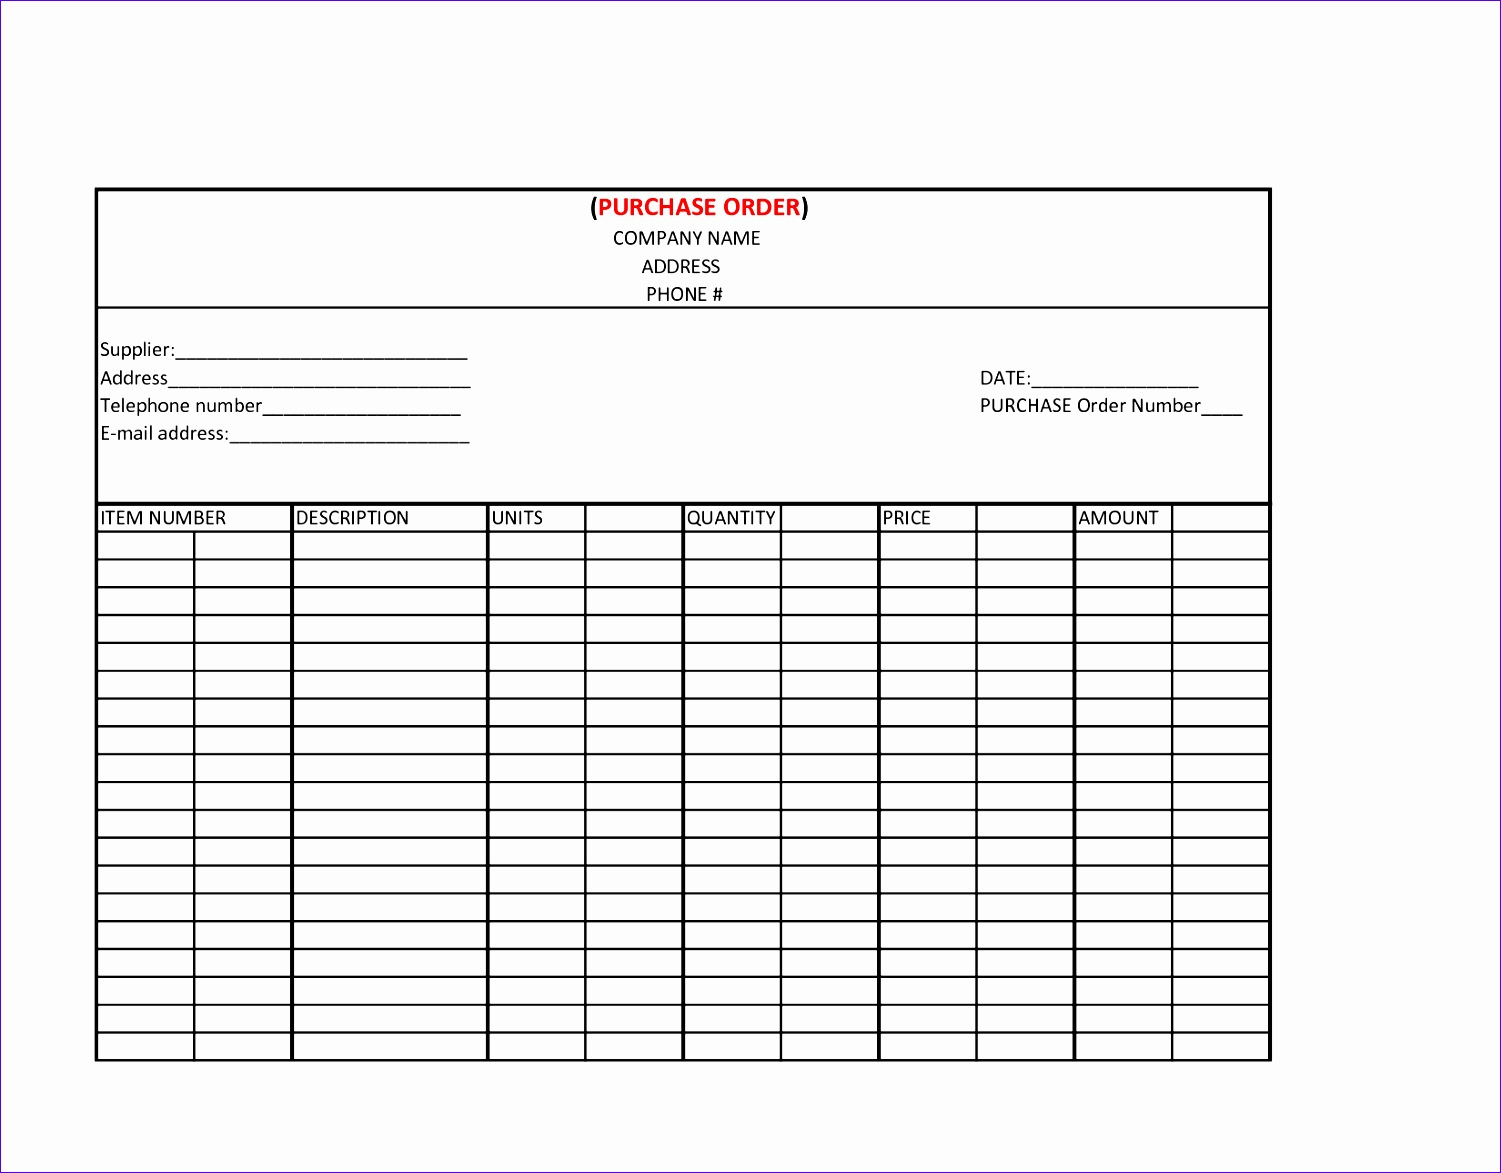 Purchase order Excel Template Lhdxa Luxury 6 Best Of Manufacturing Work order Template 16501275